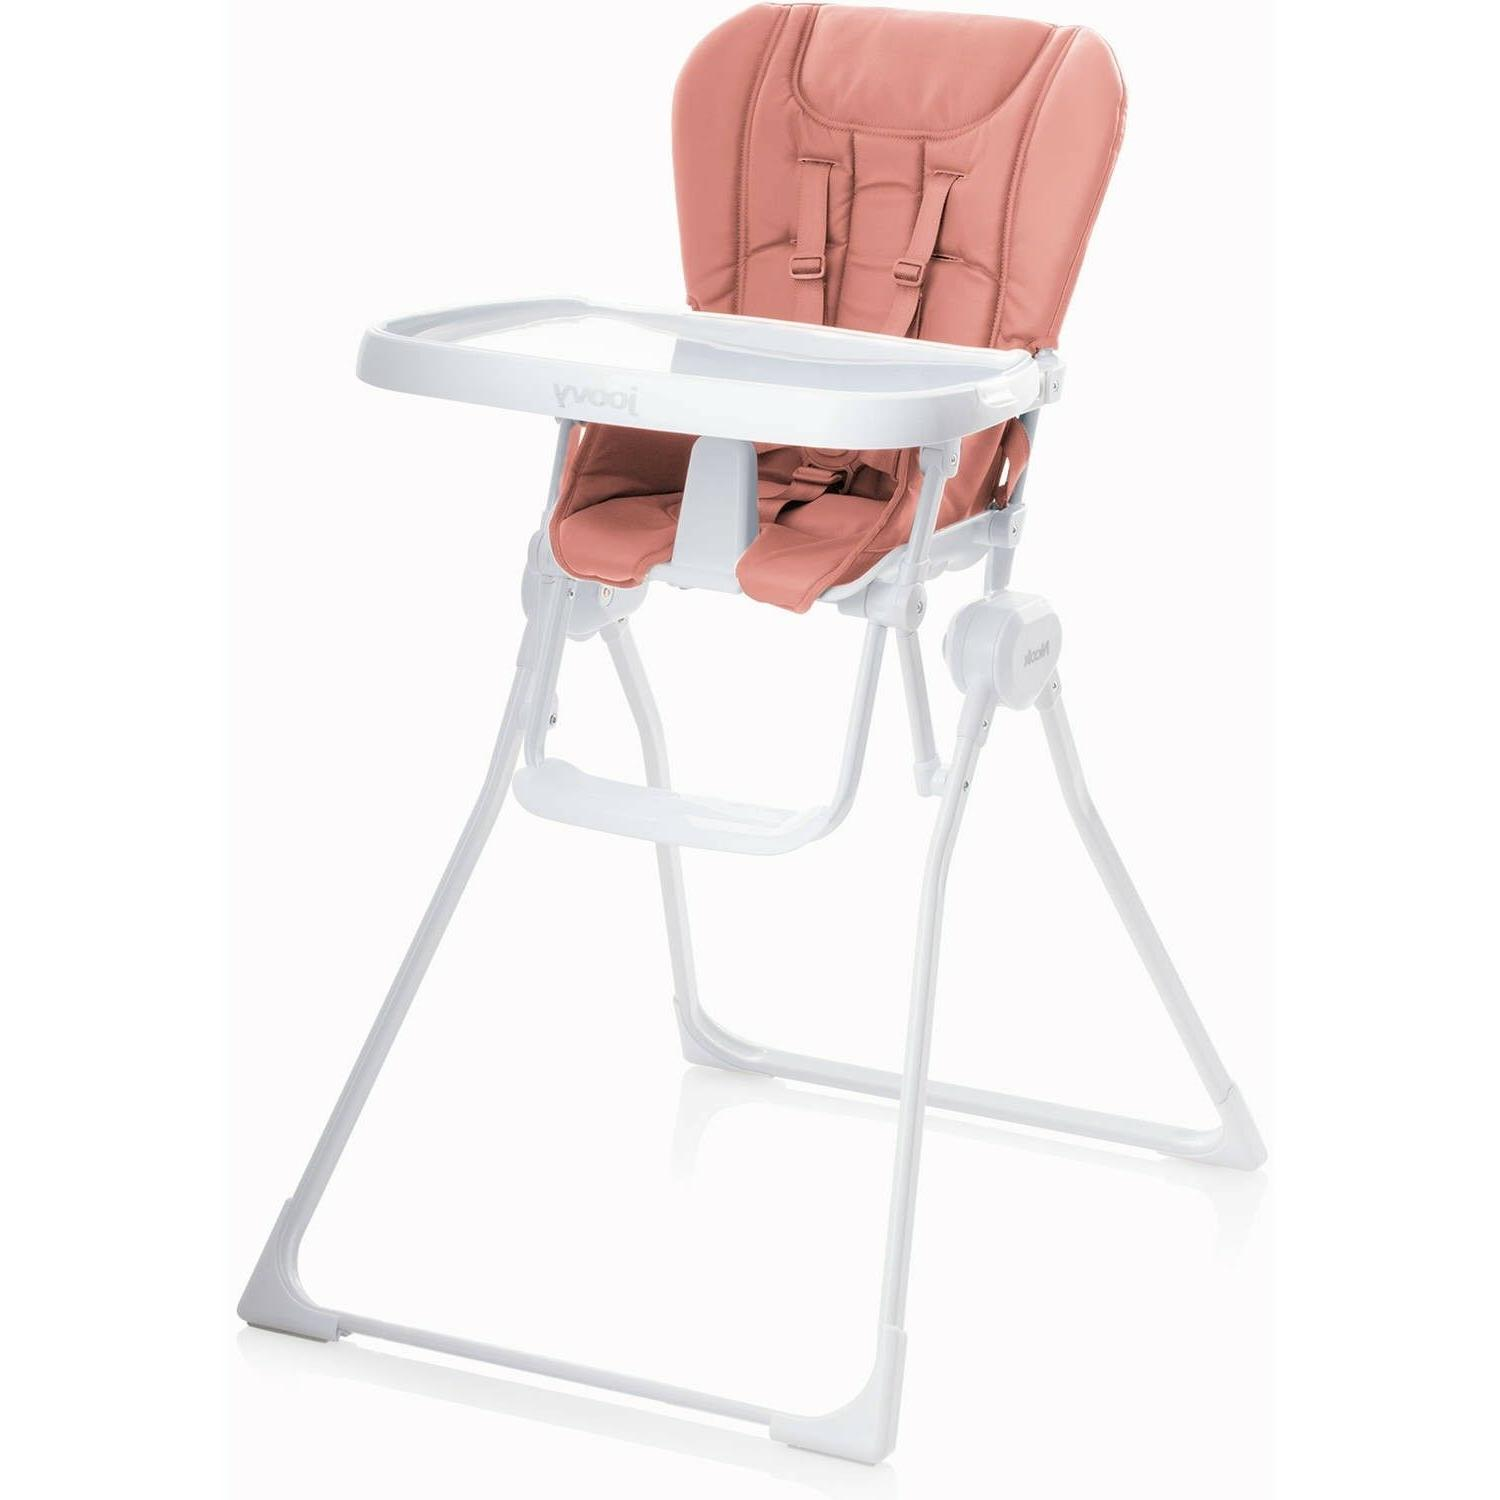 Joovy Nook High Chair Coral Baby Weight 50 And 4 Adjustable